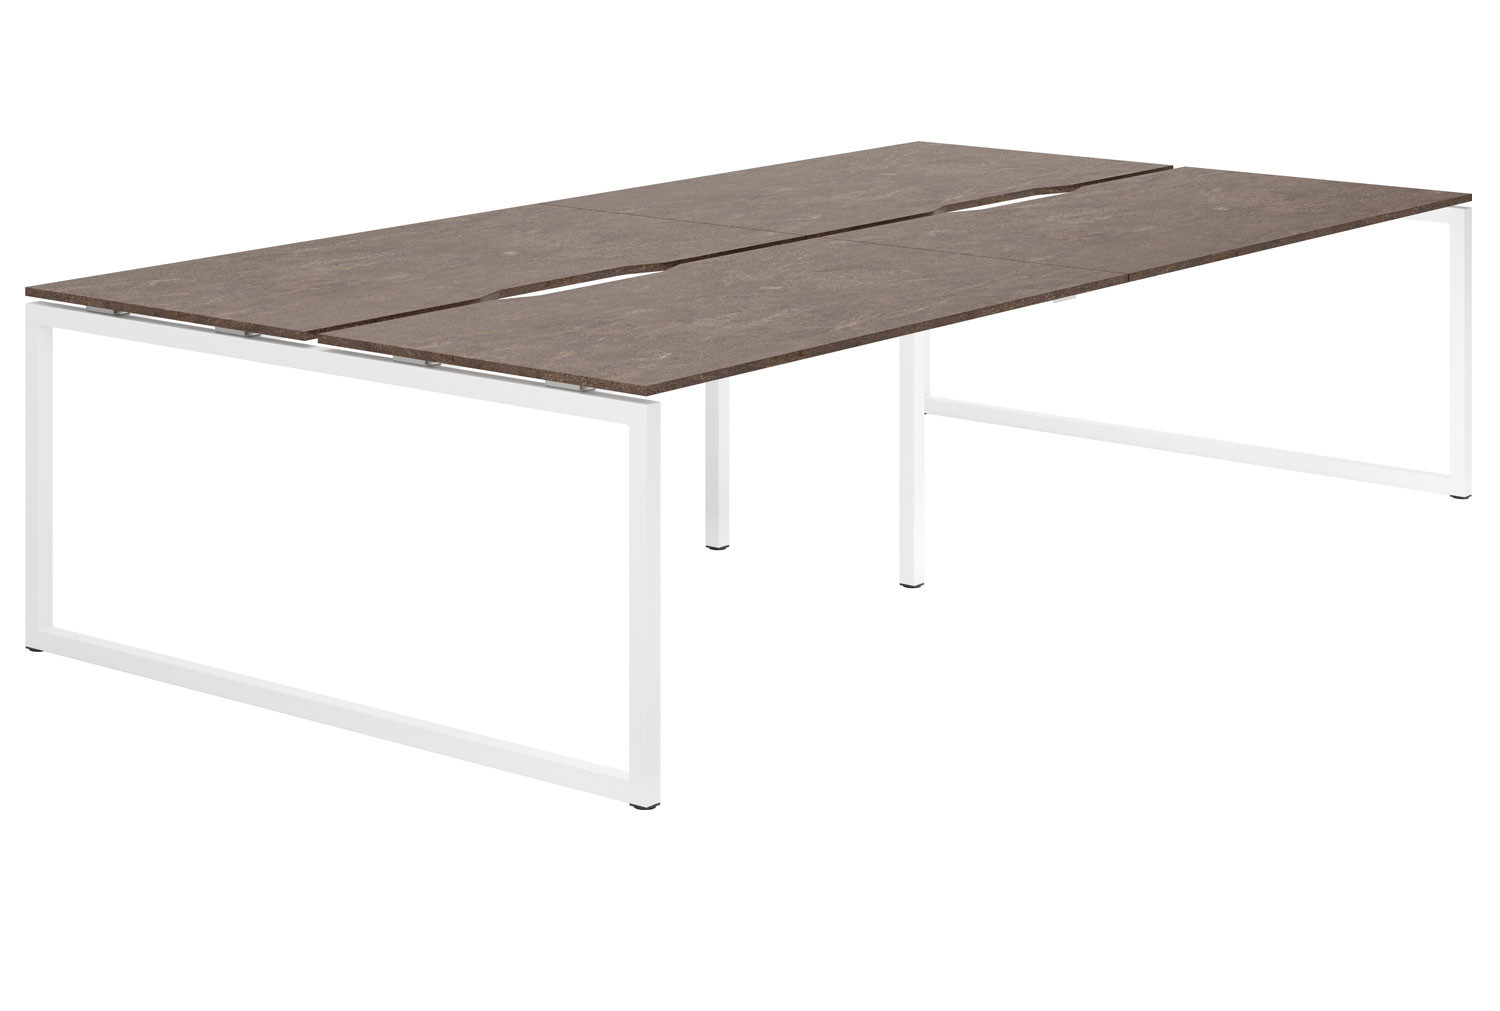 Lasso Hooped Leg 4 Person Back To Back Bench Desk (Pitted Steel)